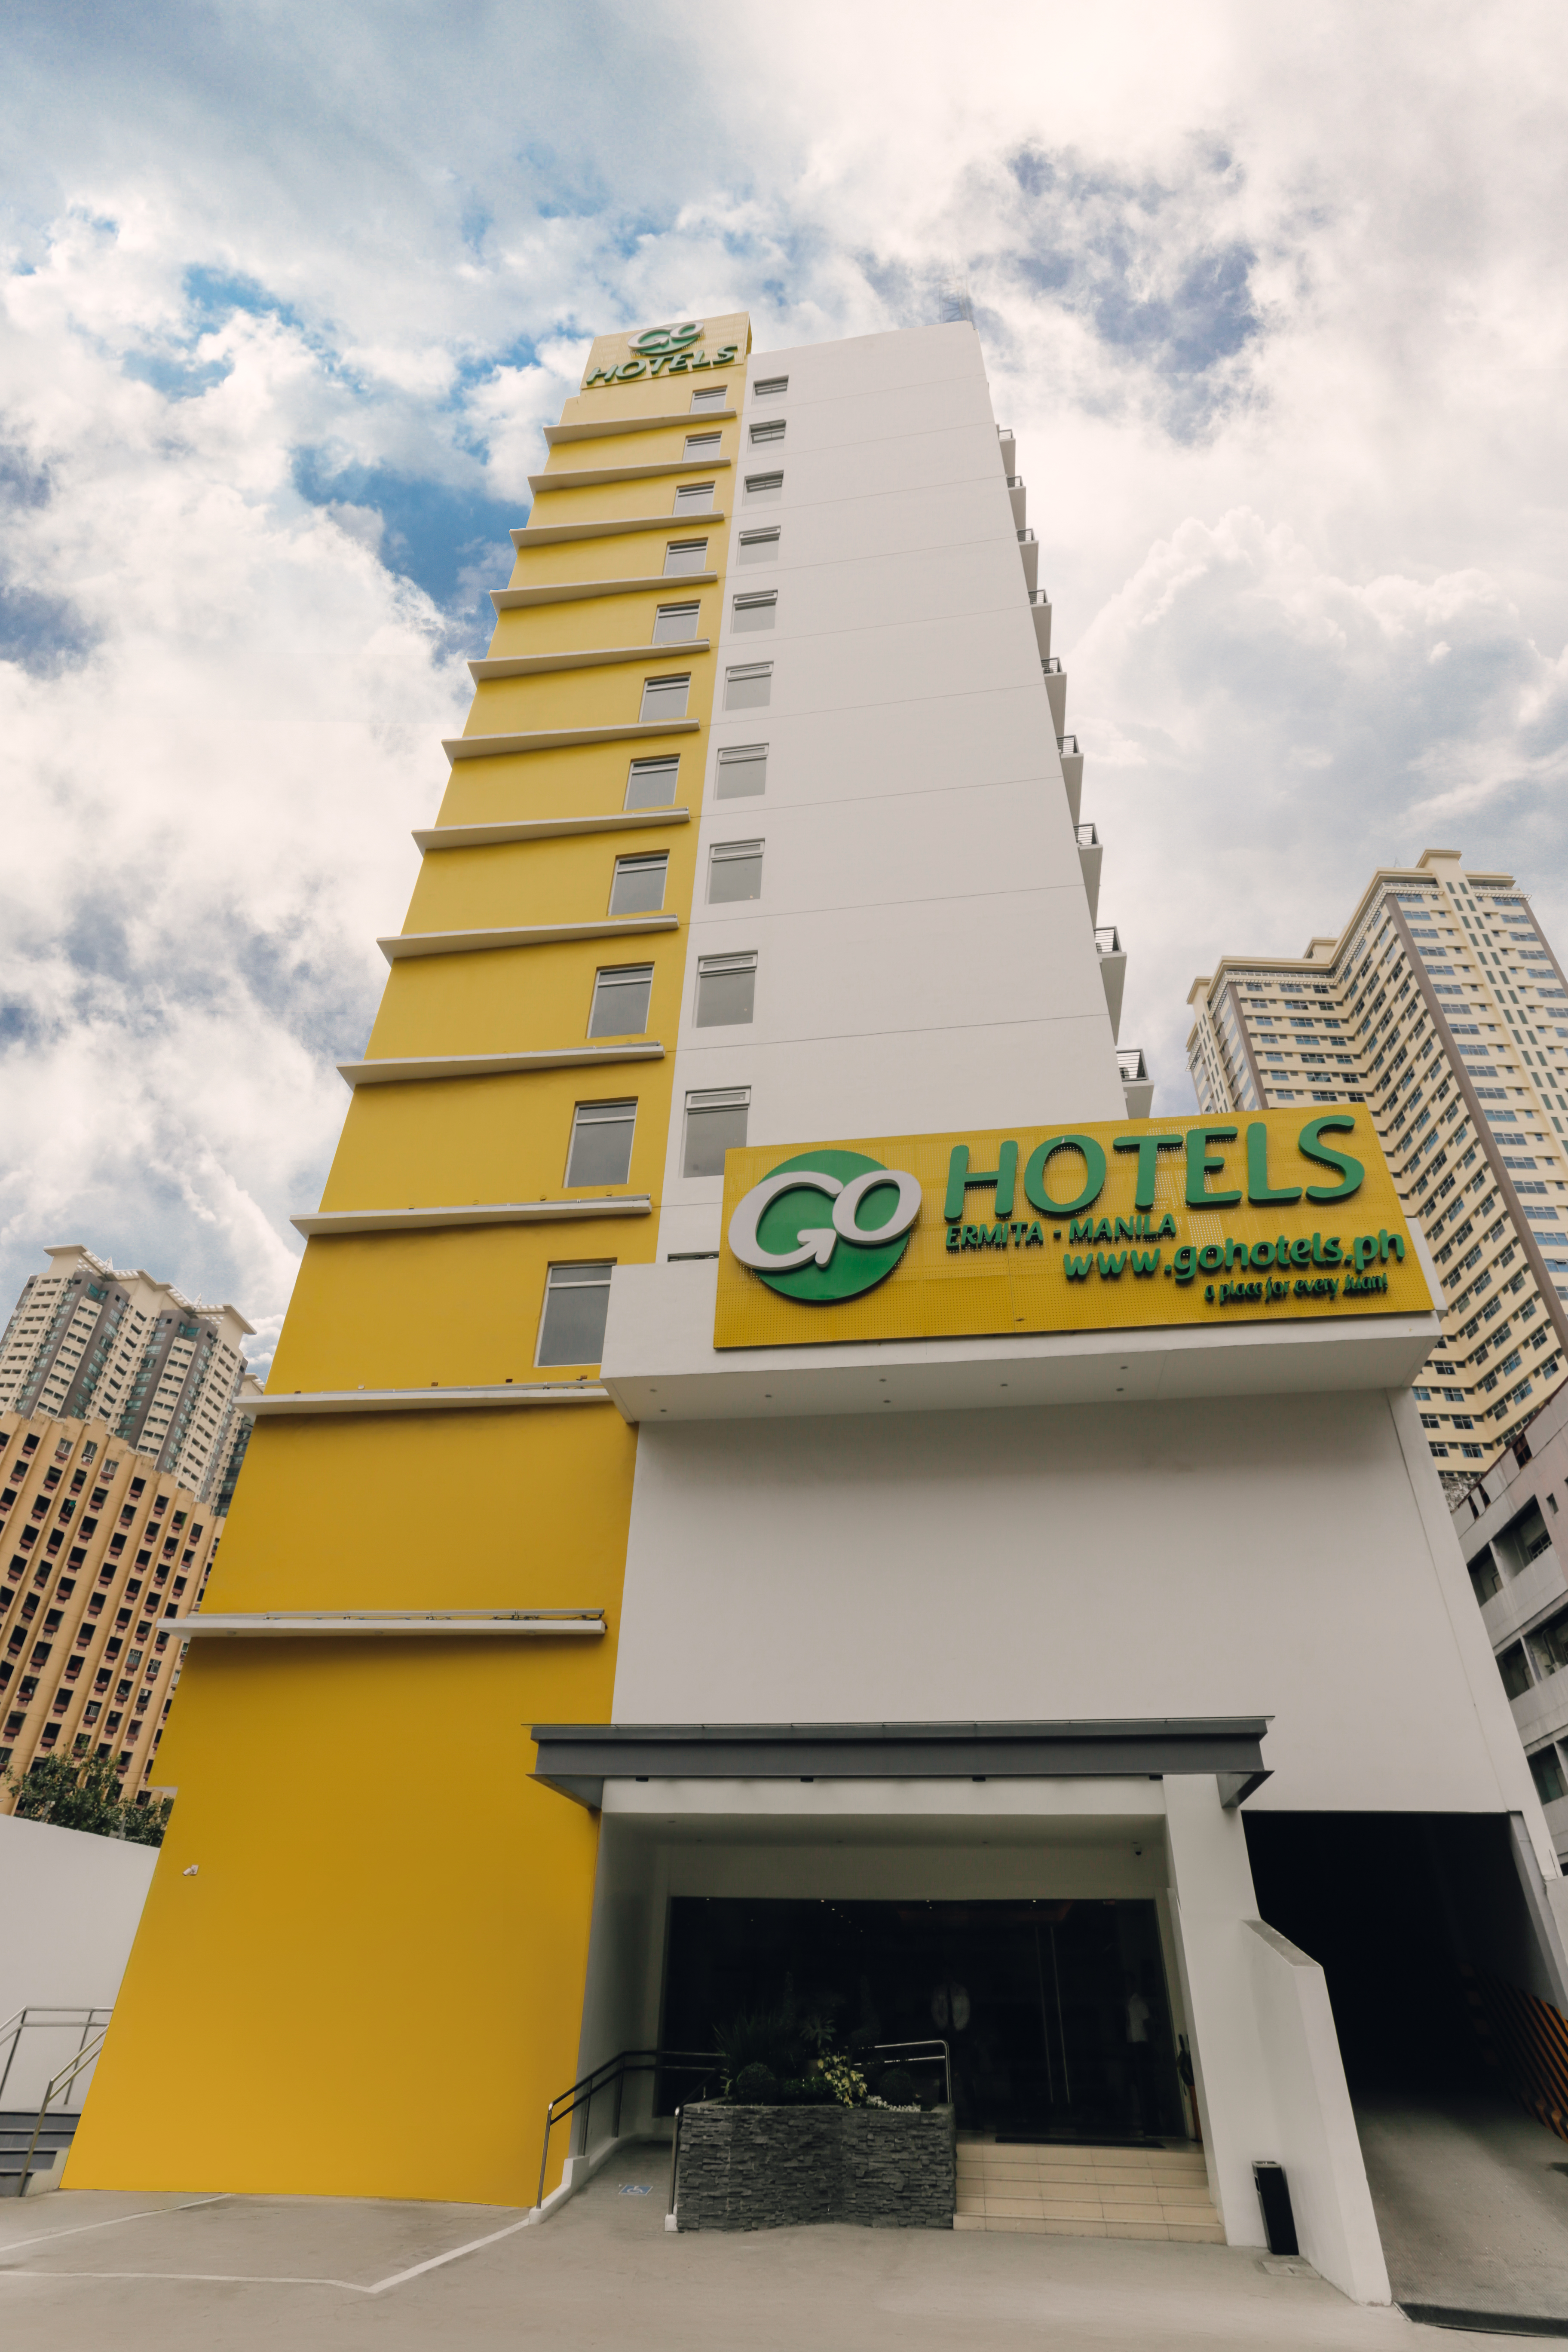 Go Hotels